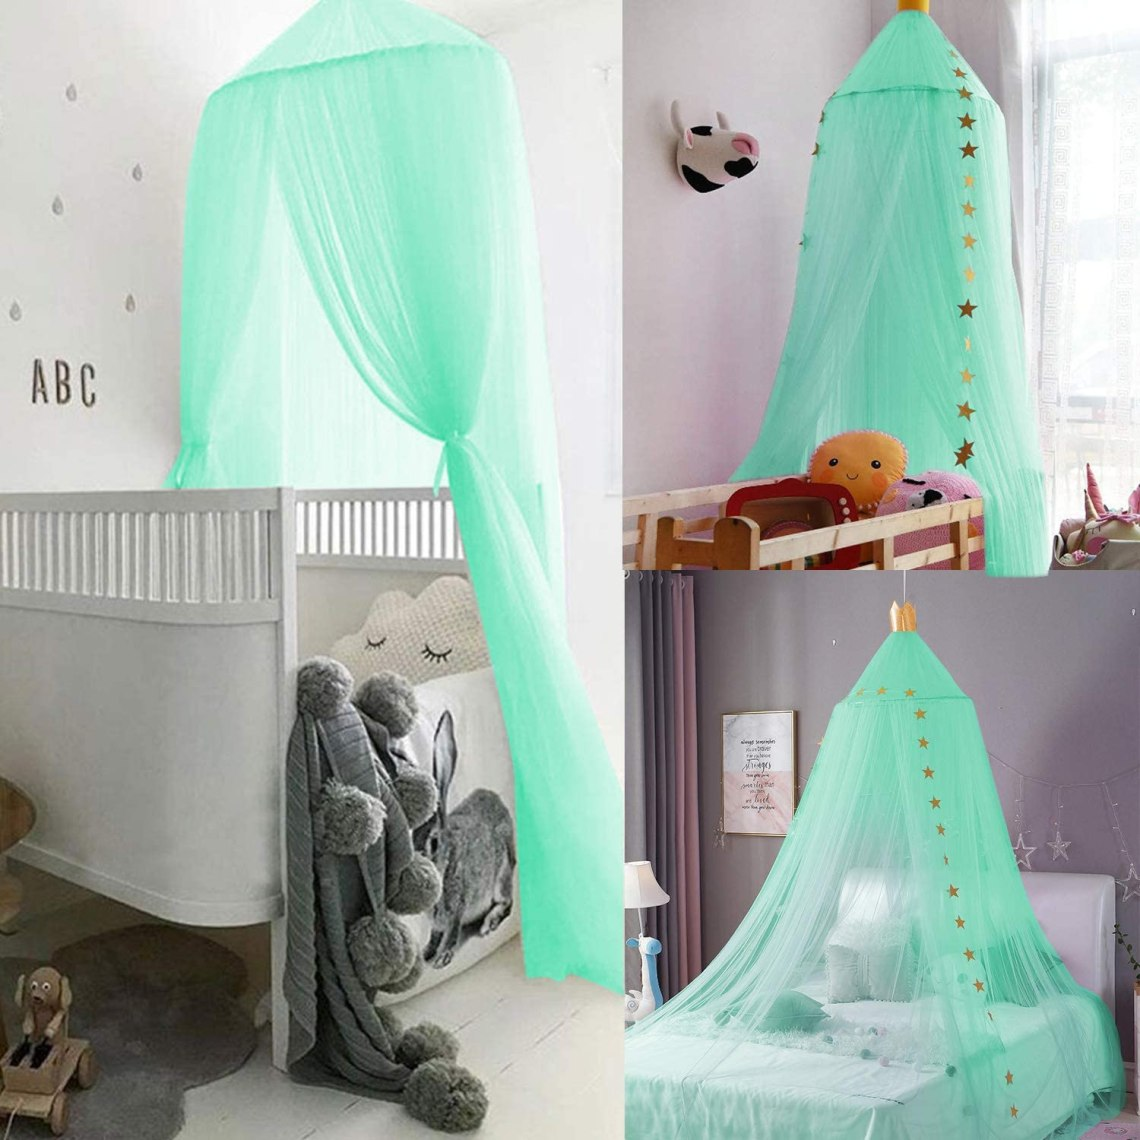 Buy Jolitac Princess Bed Canopy For Kids Room Decor Round Lace Mosquito Net Play Tent Baby House Canopys Yarn Girls Dome Netting Curtains Girls Games House Pink Castle Green Online In Indonesia